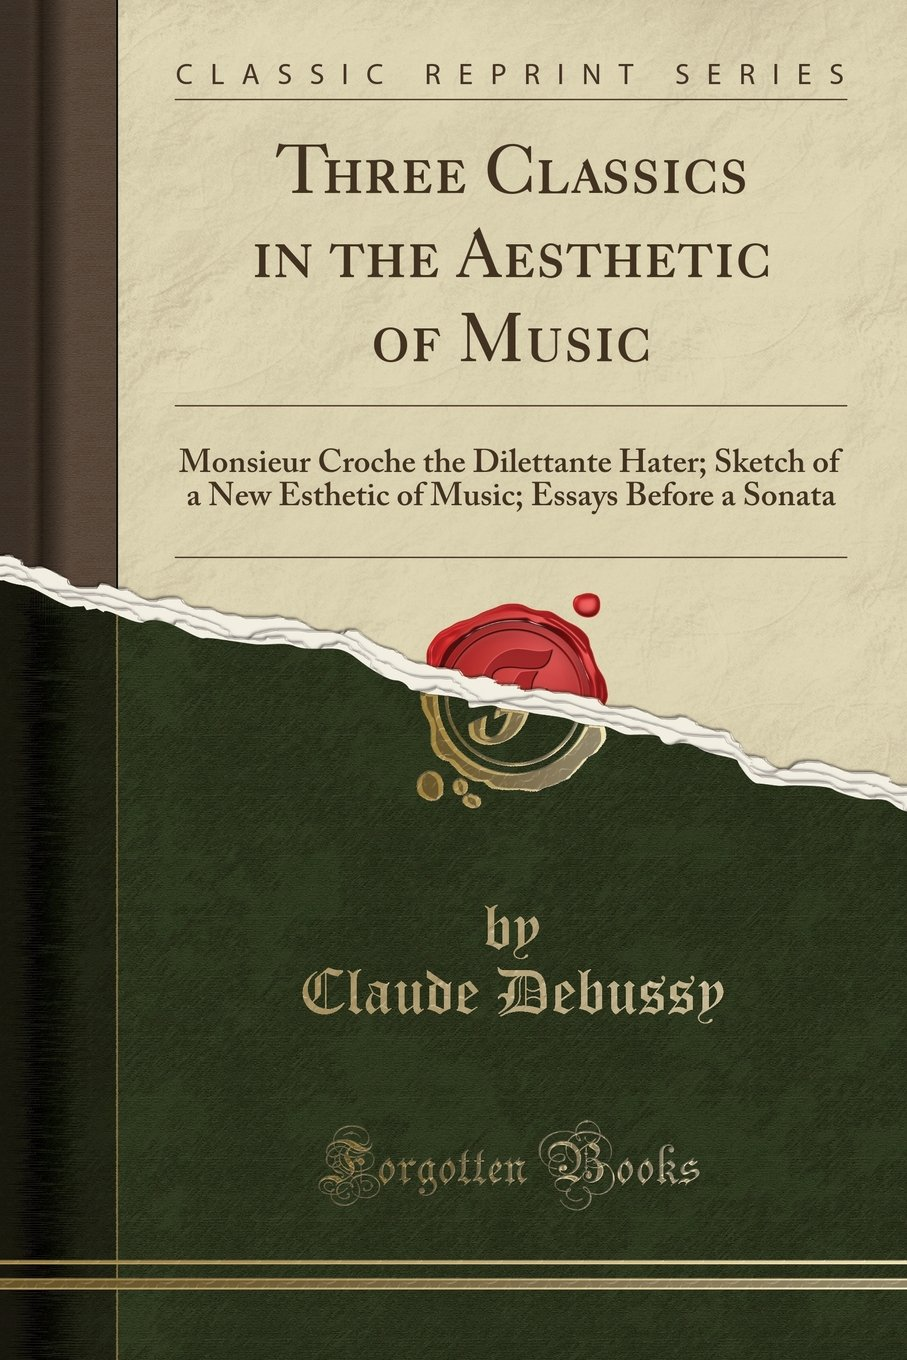 Download Three Classics in the Aesthetic of Music: Monsieur Croche the Dilettante Hater; Sketch of a New Esthetic of Music; Essays Before a Sonata (Classic Reprint) ebook